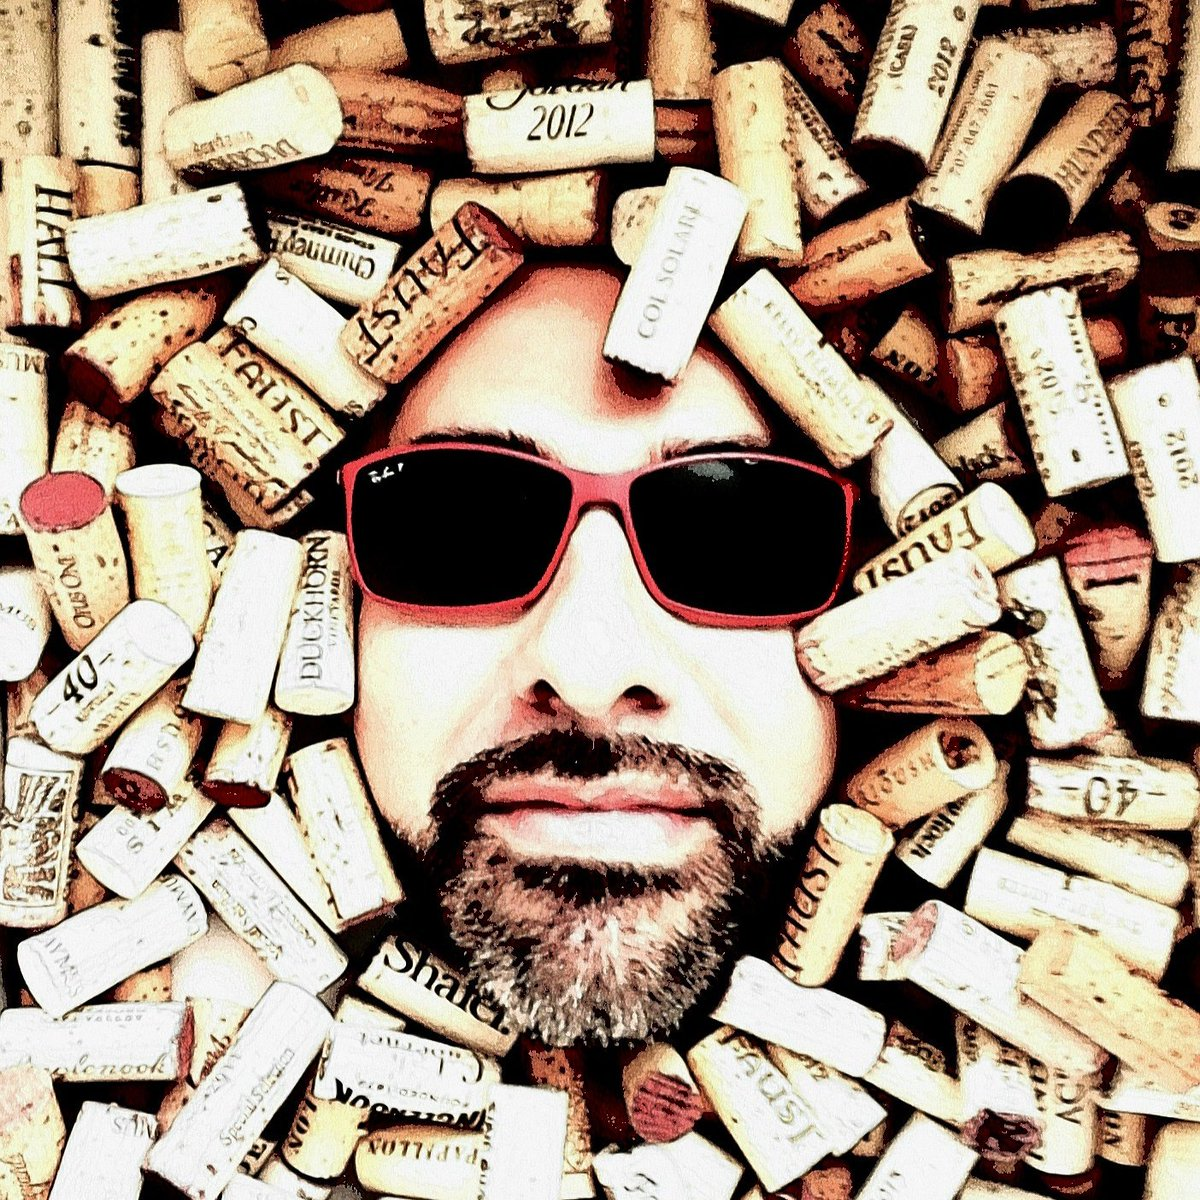 &quot;Wine corks have amazing stories to tell - If you just listen&quot;  #wine #corks #winecorks #winelife #winebottle #secrets #stories #listen<br>http://pic.twitter.com/qCS4ipYU9Q